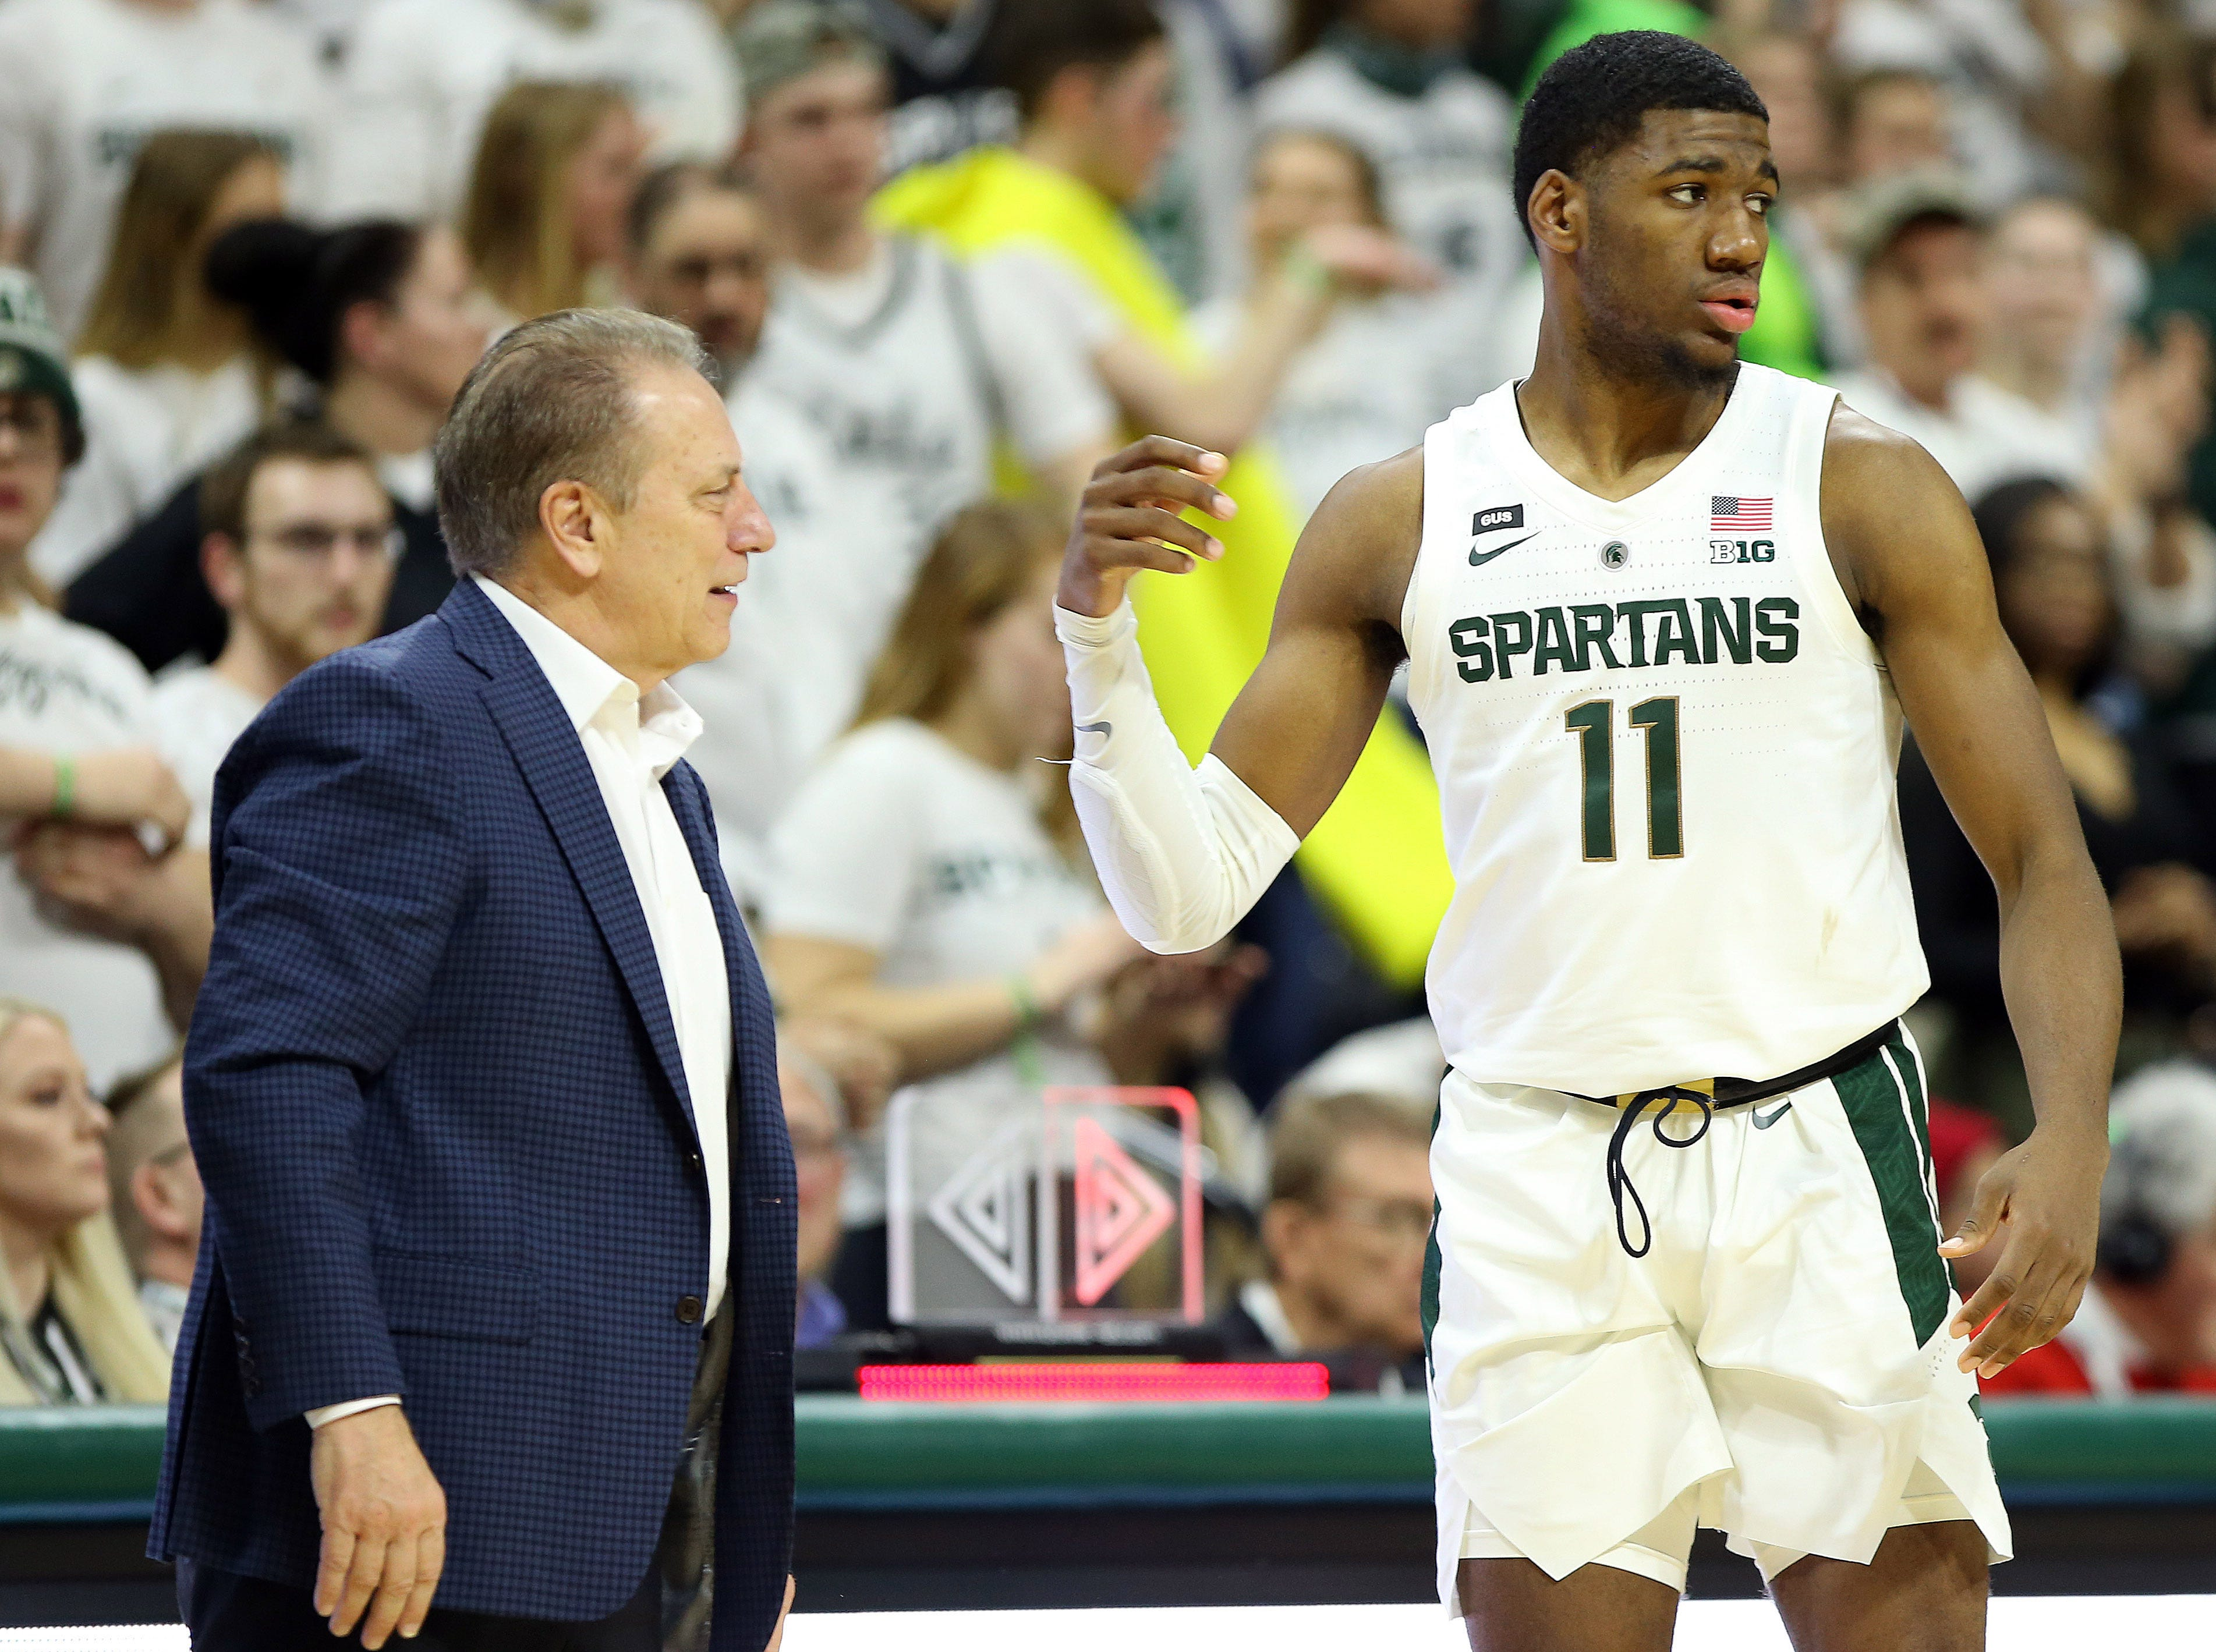 Feb 20, 2019; East Lansing, MI, USA; Michigan State Spartans head coach Tom Izzo talks to Michigan State Spartans forward Aaron Henry (11) during the second half of a game against the Rutgers Scarlet Knights at the Breslin Center. Mandatory Credit: Mike Carter-USA TODAY Sports